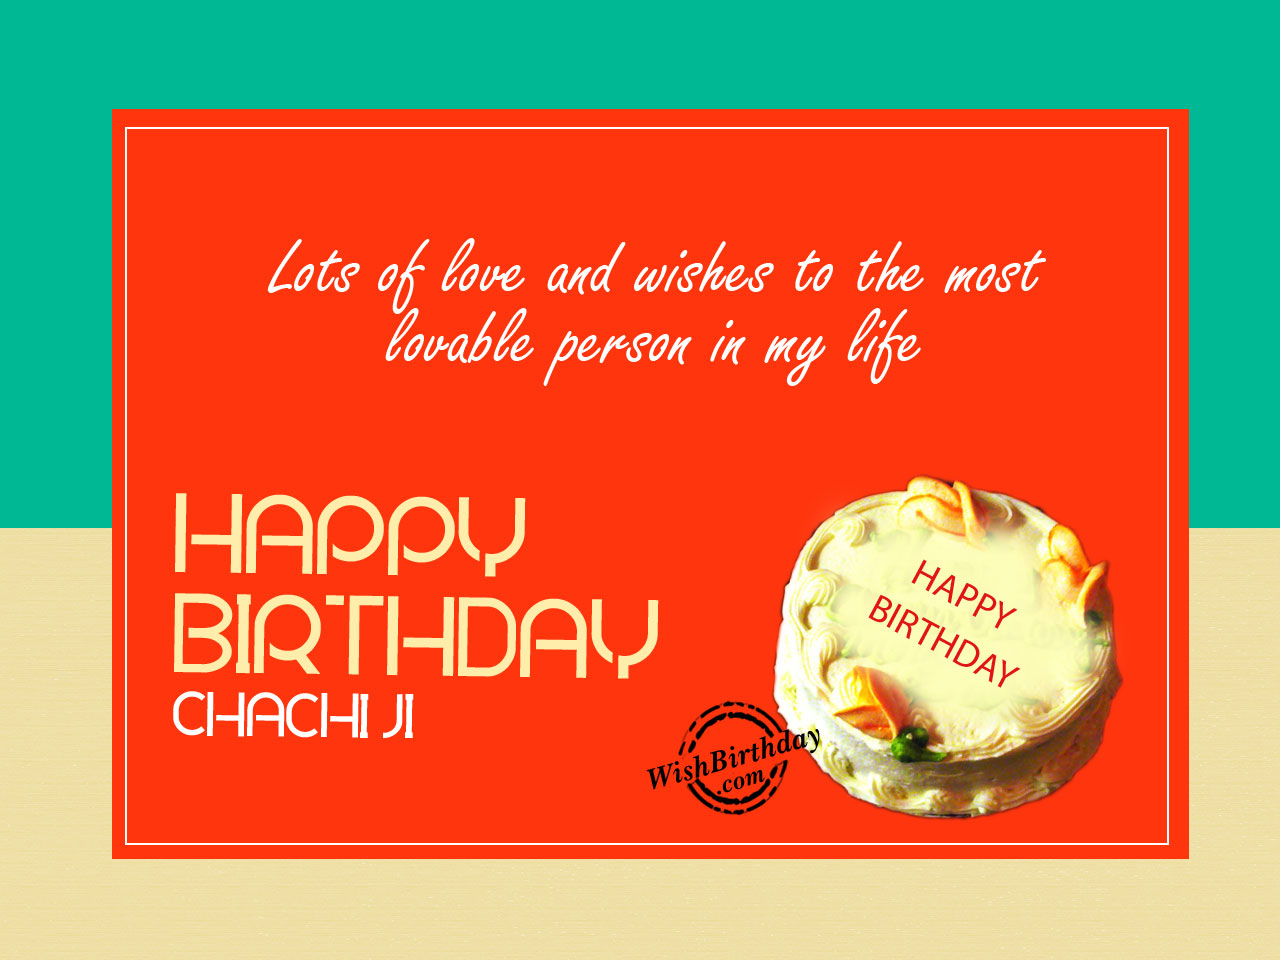 Lots Of Love And Wishes For Dear Chachi Jihappy Birthday